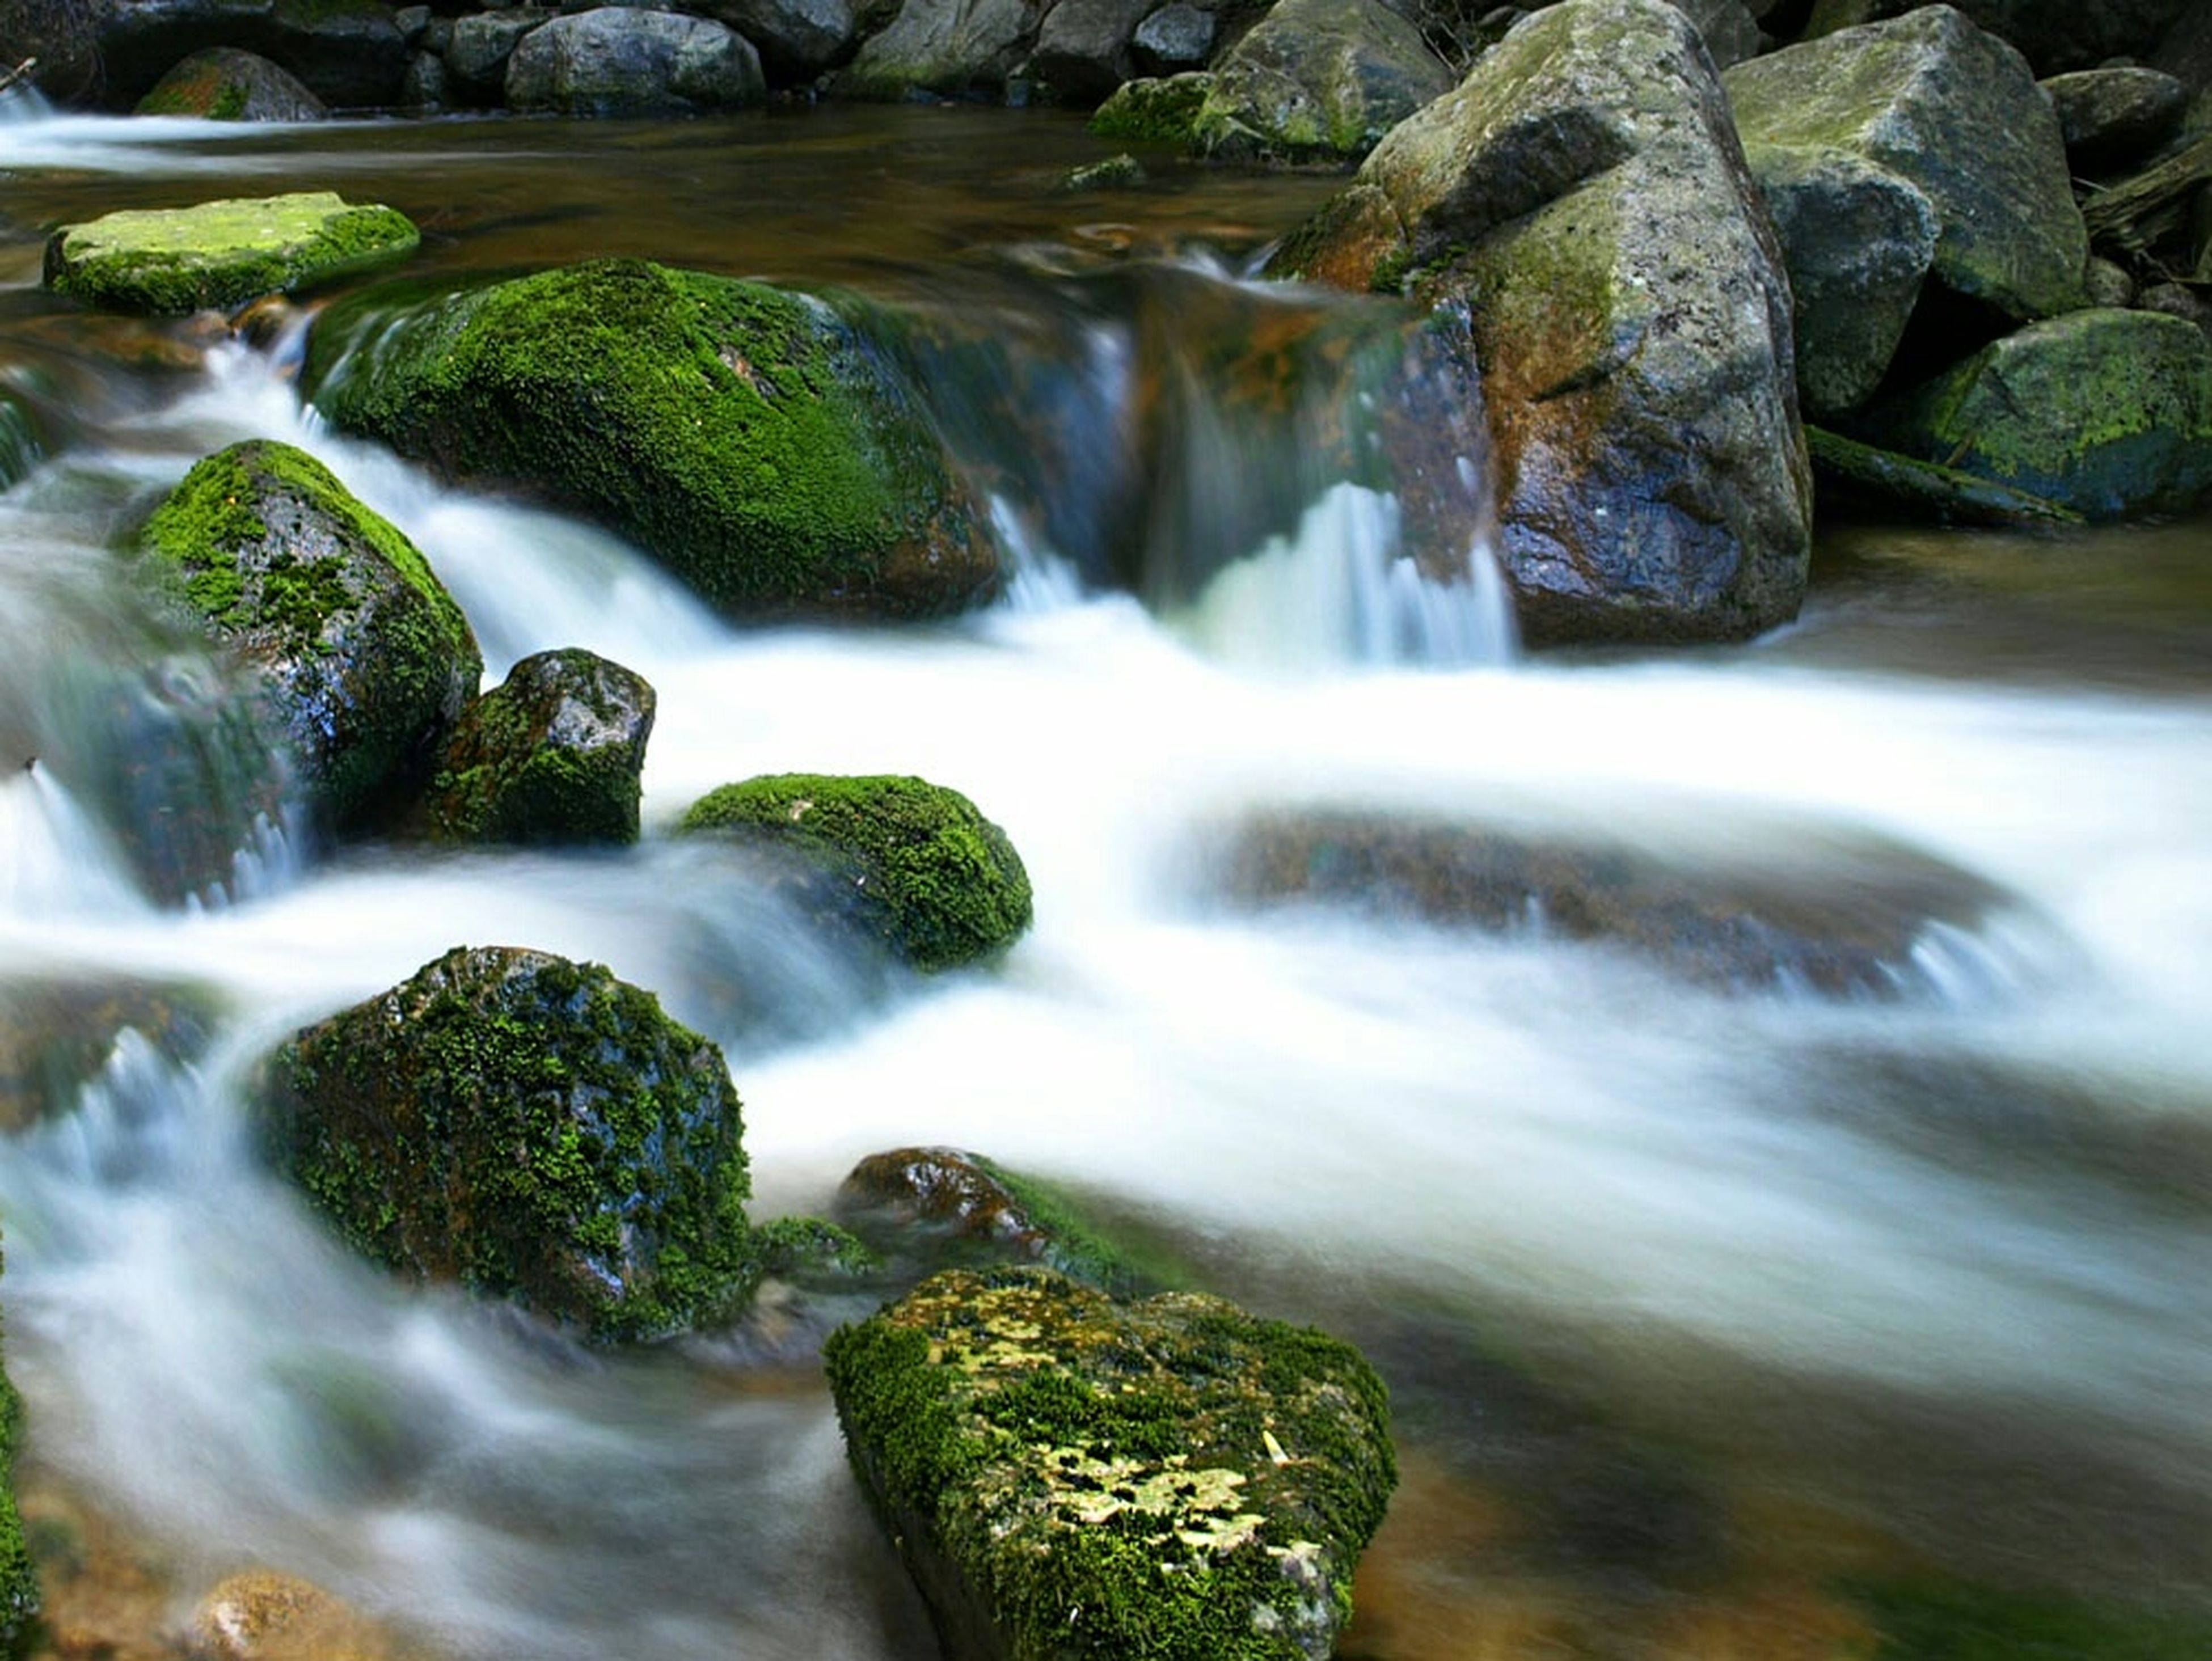 water, waterfall, flowing water, motion, long exposure, flowing, rock - object, beauty in nature, nature, scenics, forest, moss, blurred motion, rock, stream, environment, idyllic, rock formation, outdoors, plant